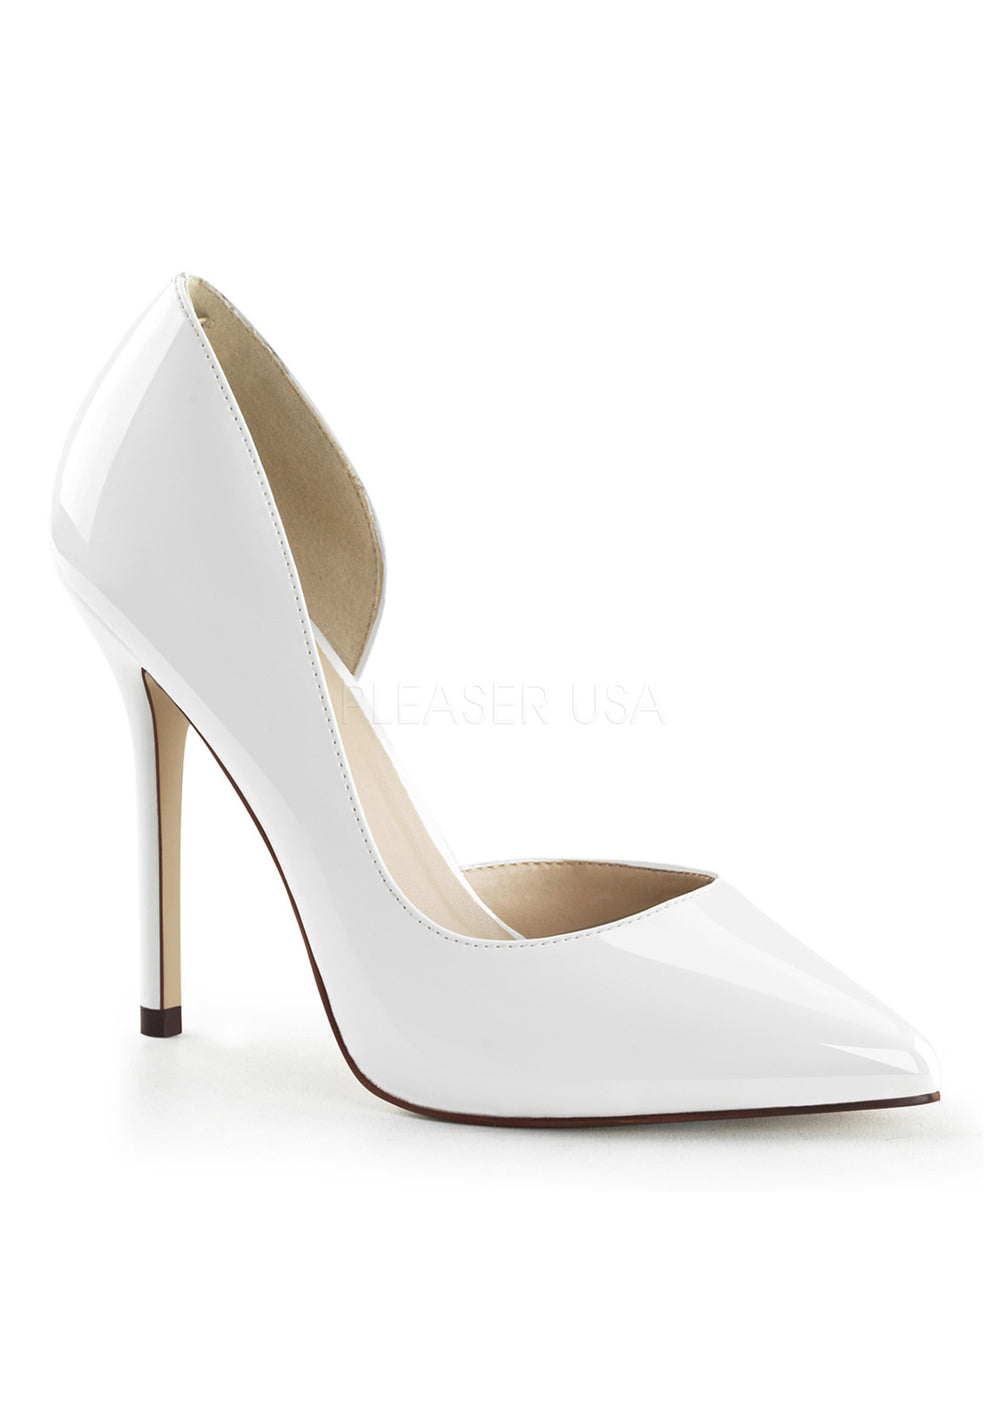 White Patent Dorsay High Heels